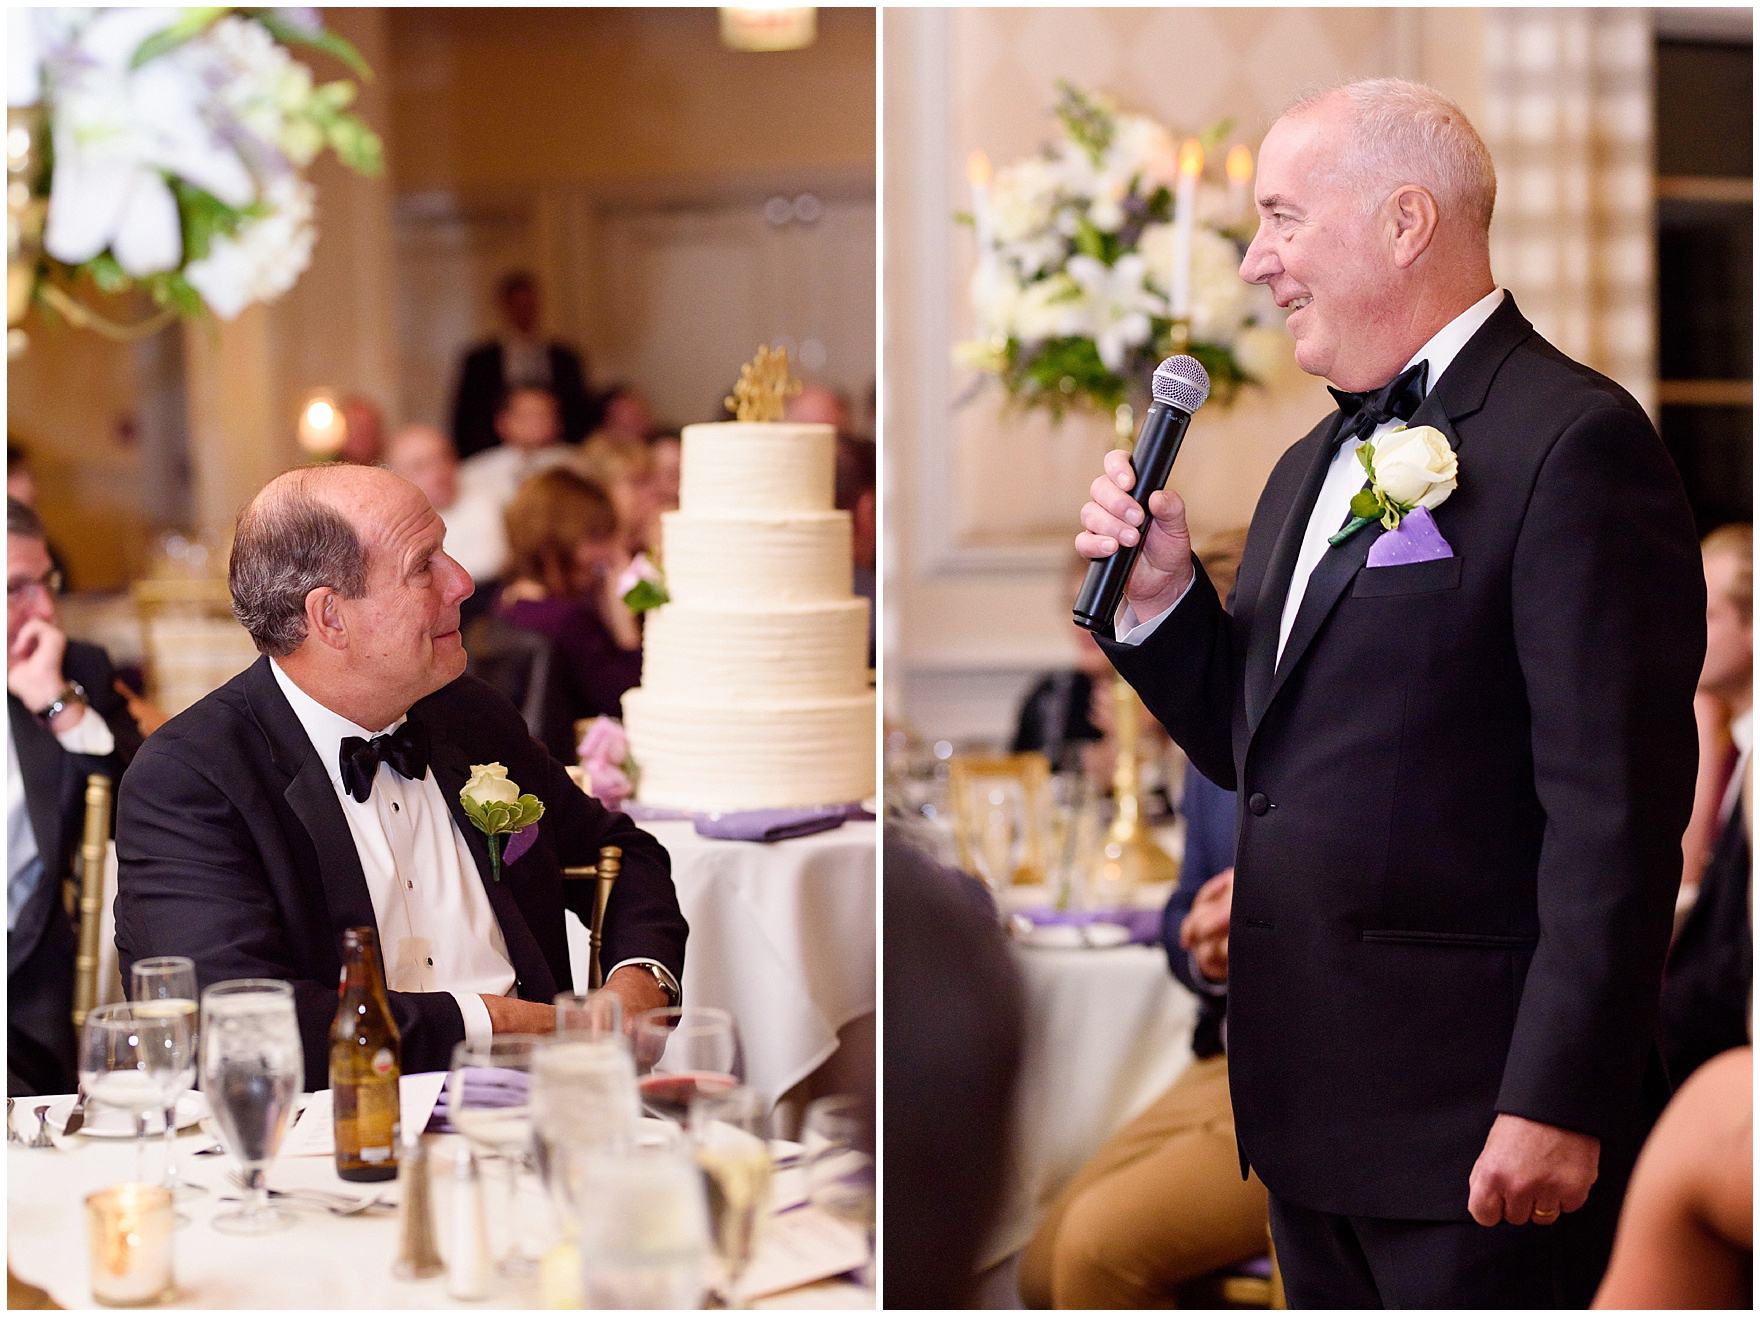 The father of the bride speaks at a Glen Club Glenview Illinois wedding.